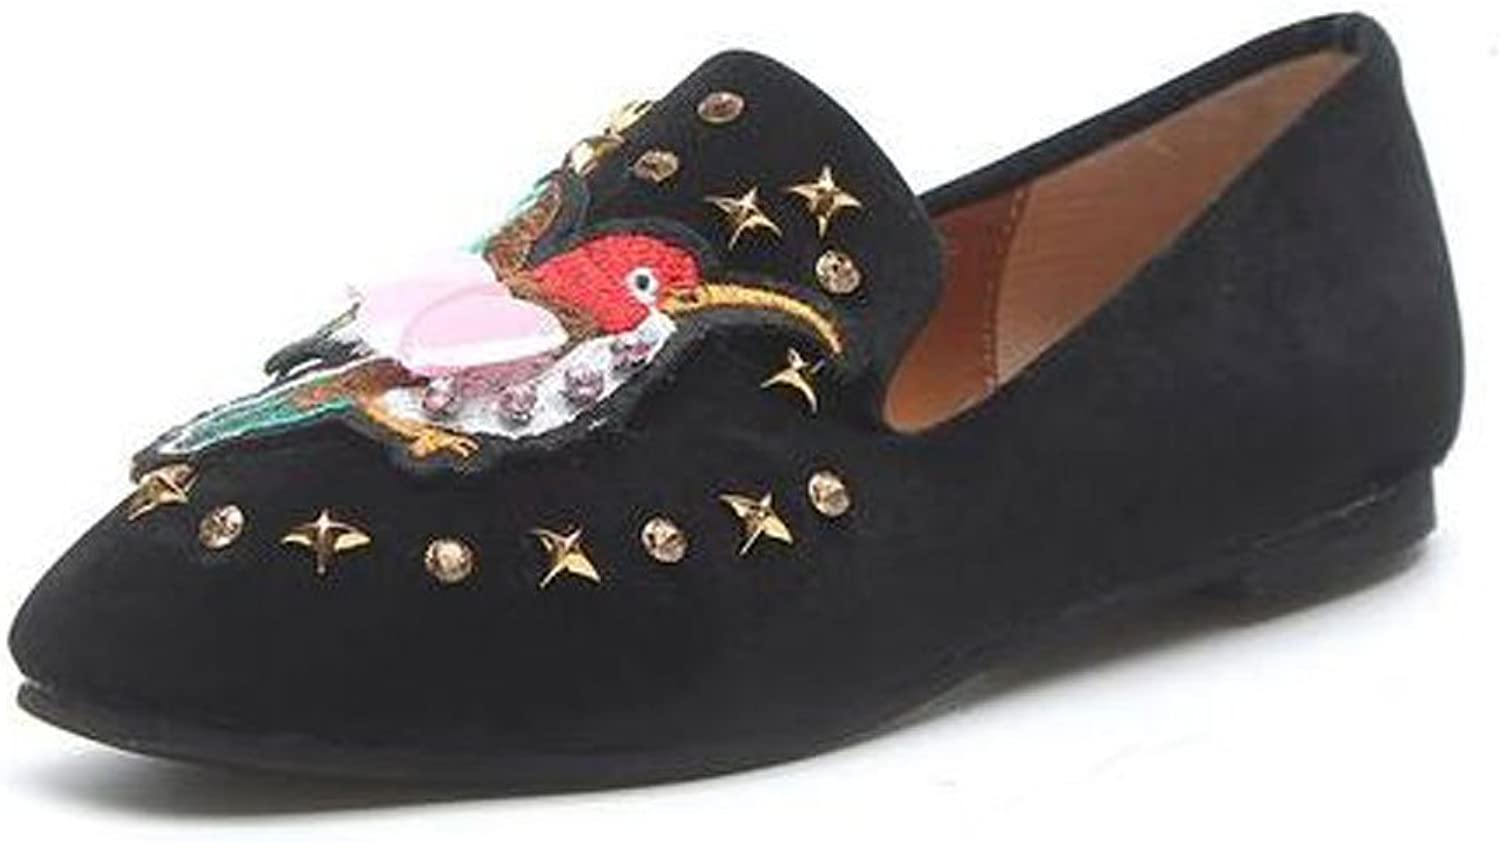 Slduv7 Women Suede Leather Flats Leisure Embroidery Soft Lightweight Ballerinas Comfort Driving shoes